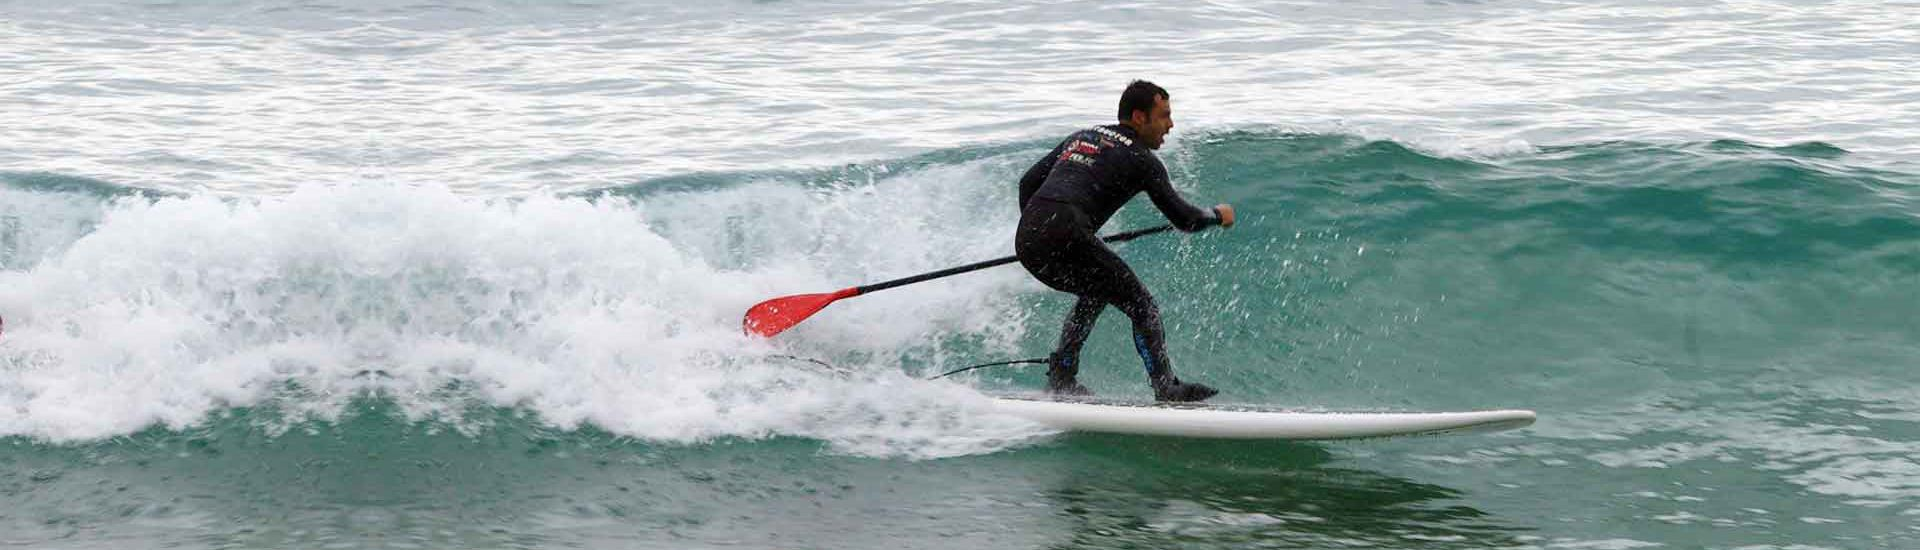 Clase de Stand Up Paddle Surf en olas - Escola Catalana de Surf b73c95612ad